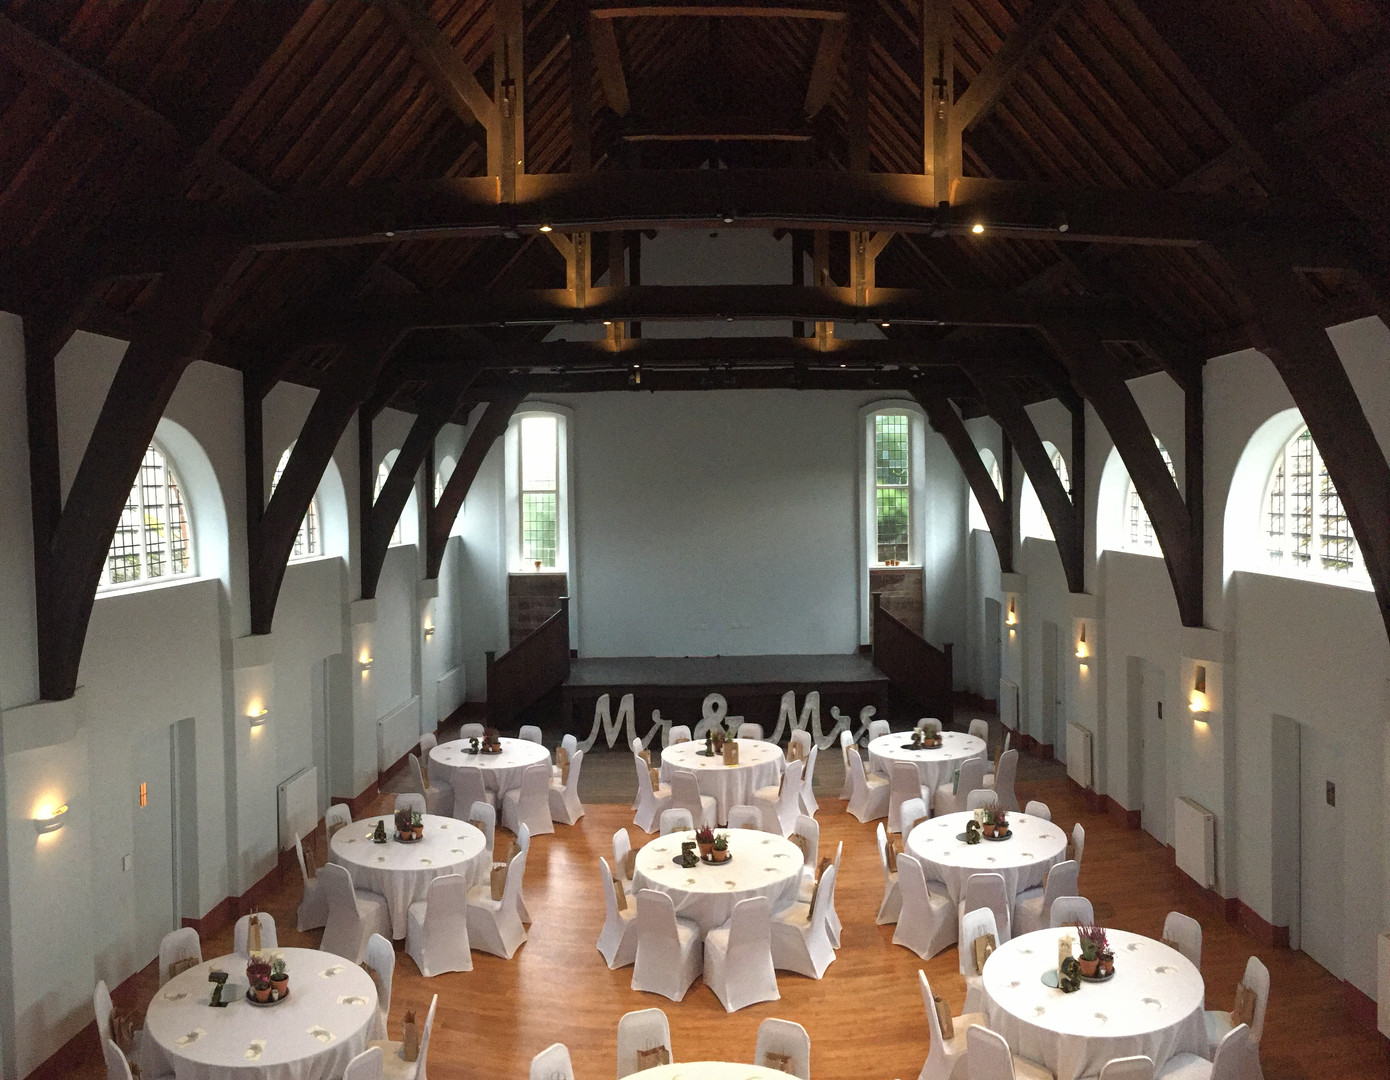 The hall set out for a wedding reception